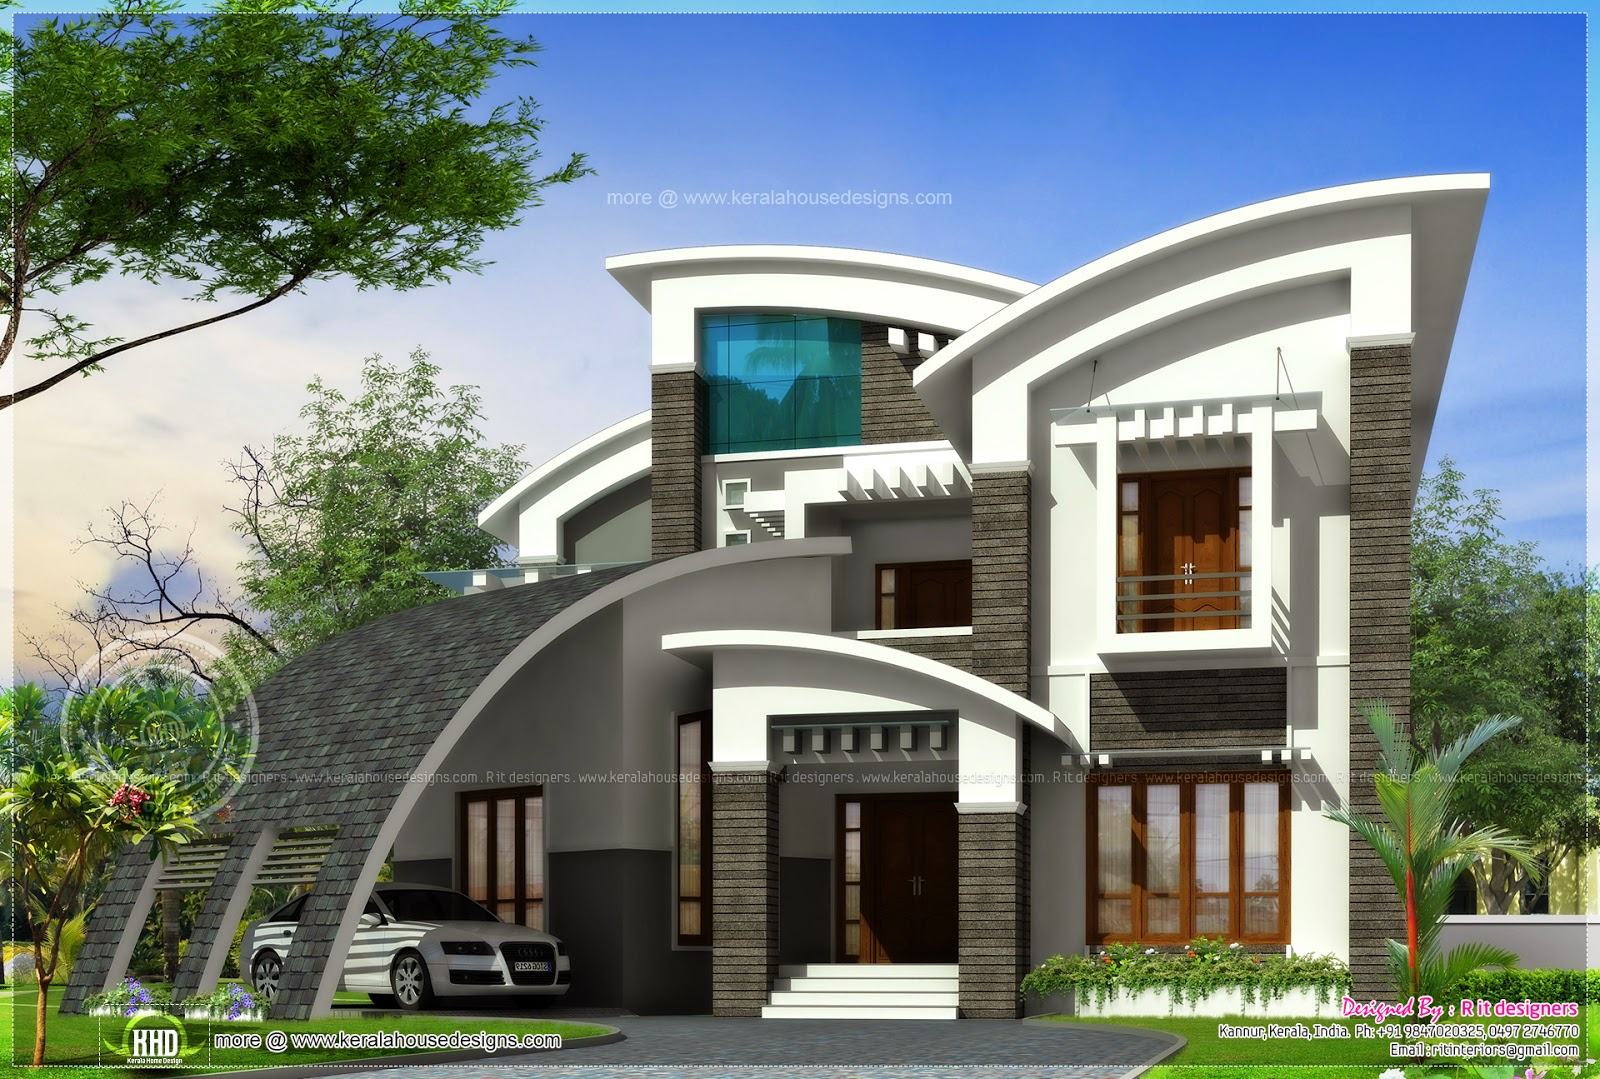 Super luxury ultra modern house design kerala home for Ultra modern small homes